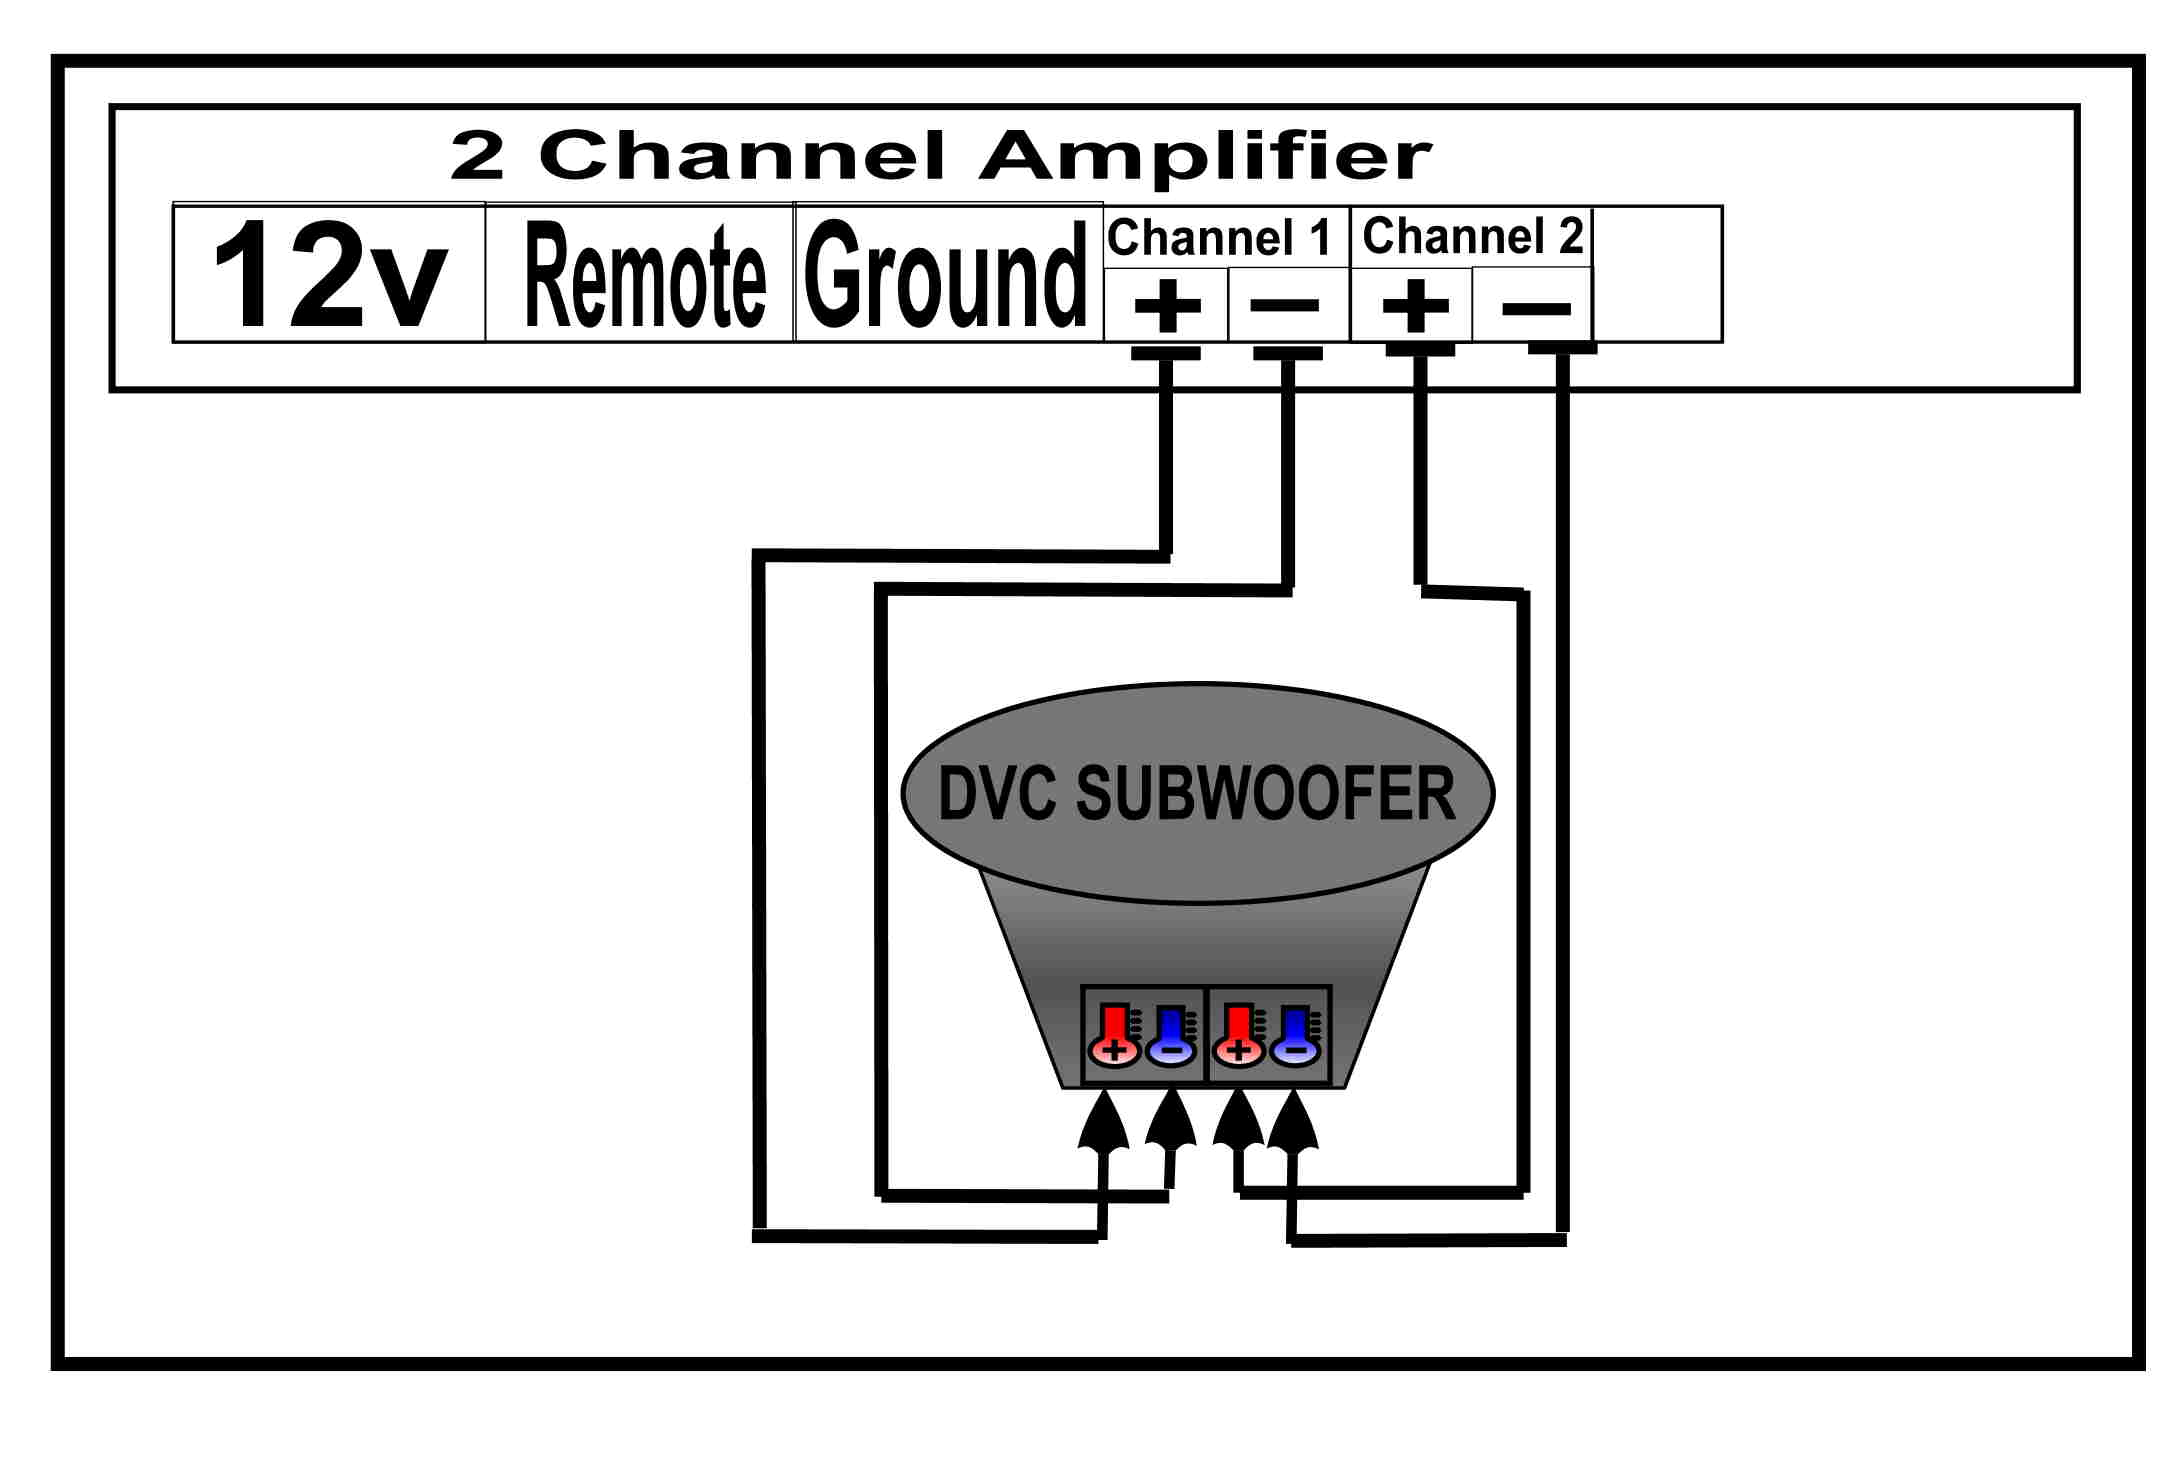 DVC to 2 Channel Amplifier help with wiring my audiobahn aw 1200 q and spl 460 phantom amplifier audiobahn aw1200q wiring diagram at mr168.co